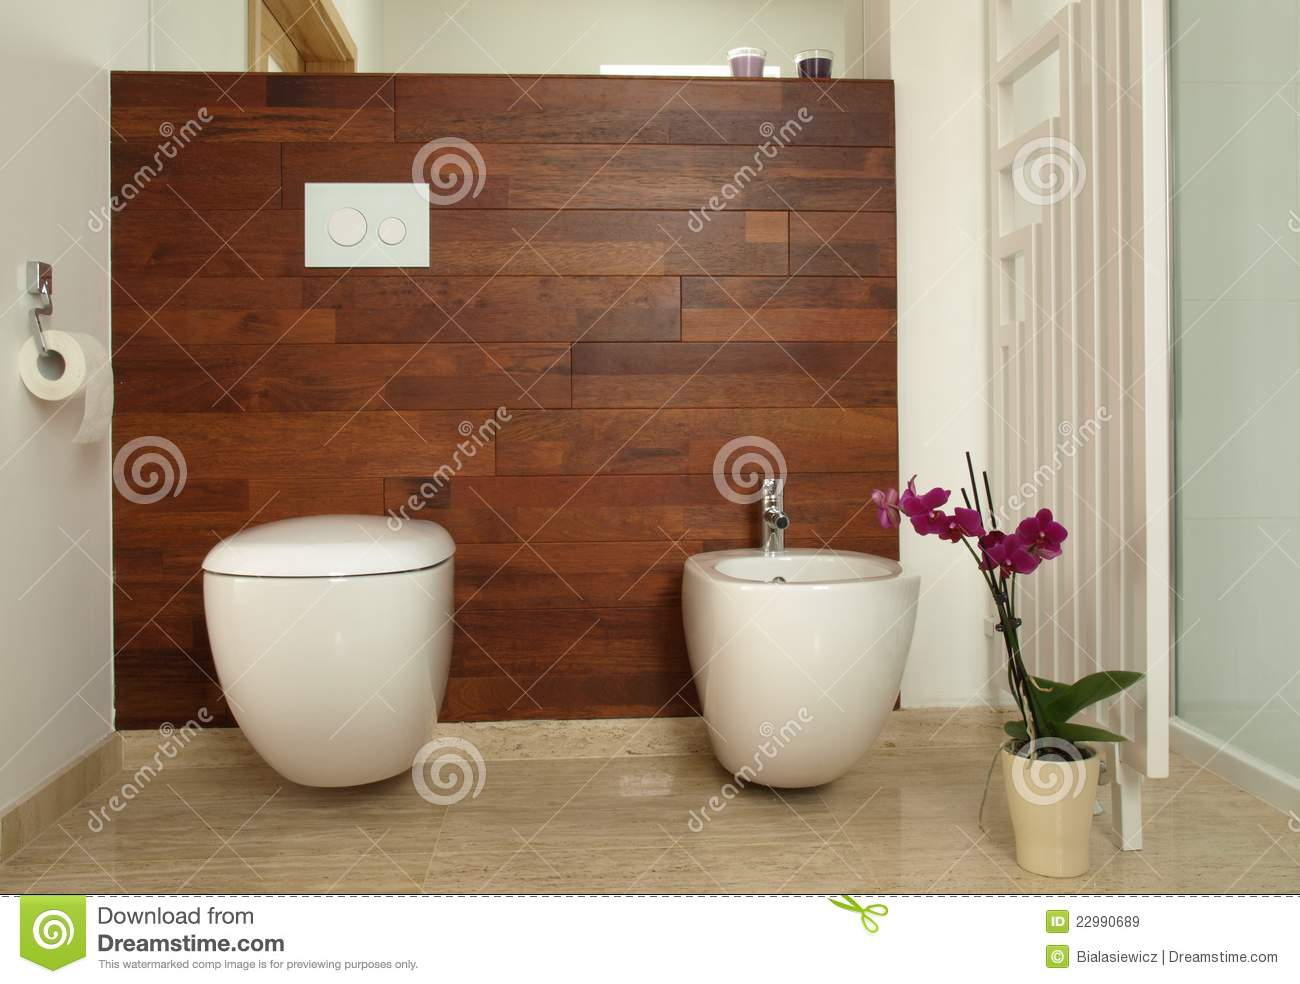 Modern bathroom with toilet and bidet stock image image for Commode salle de bain